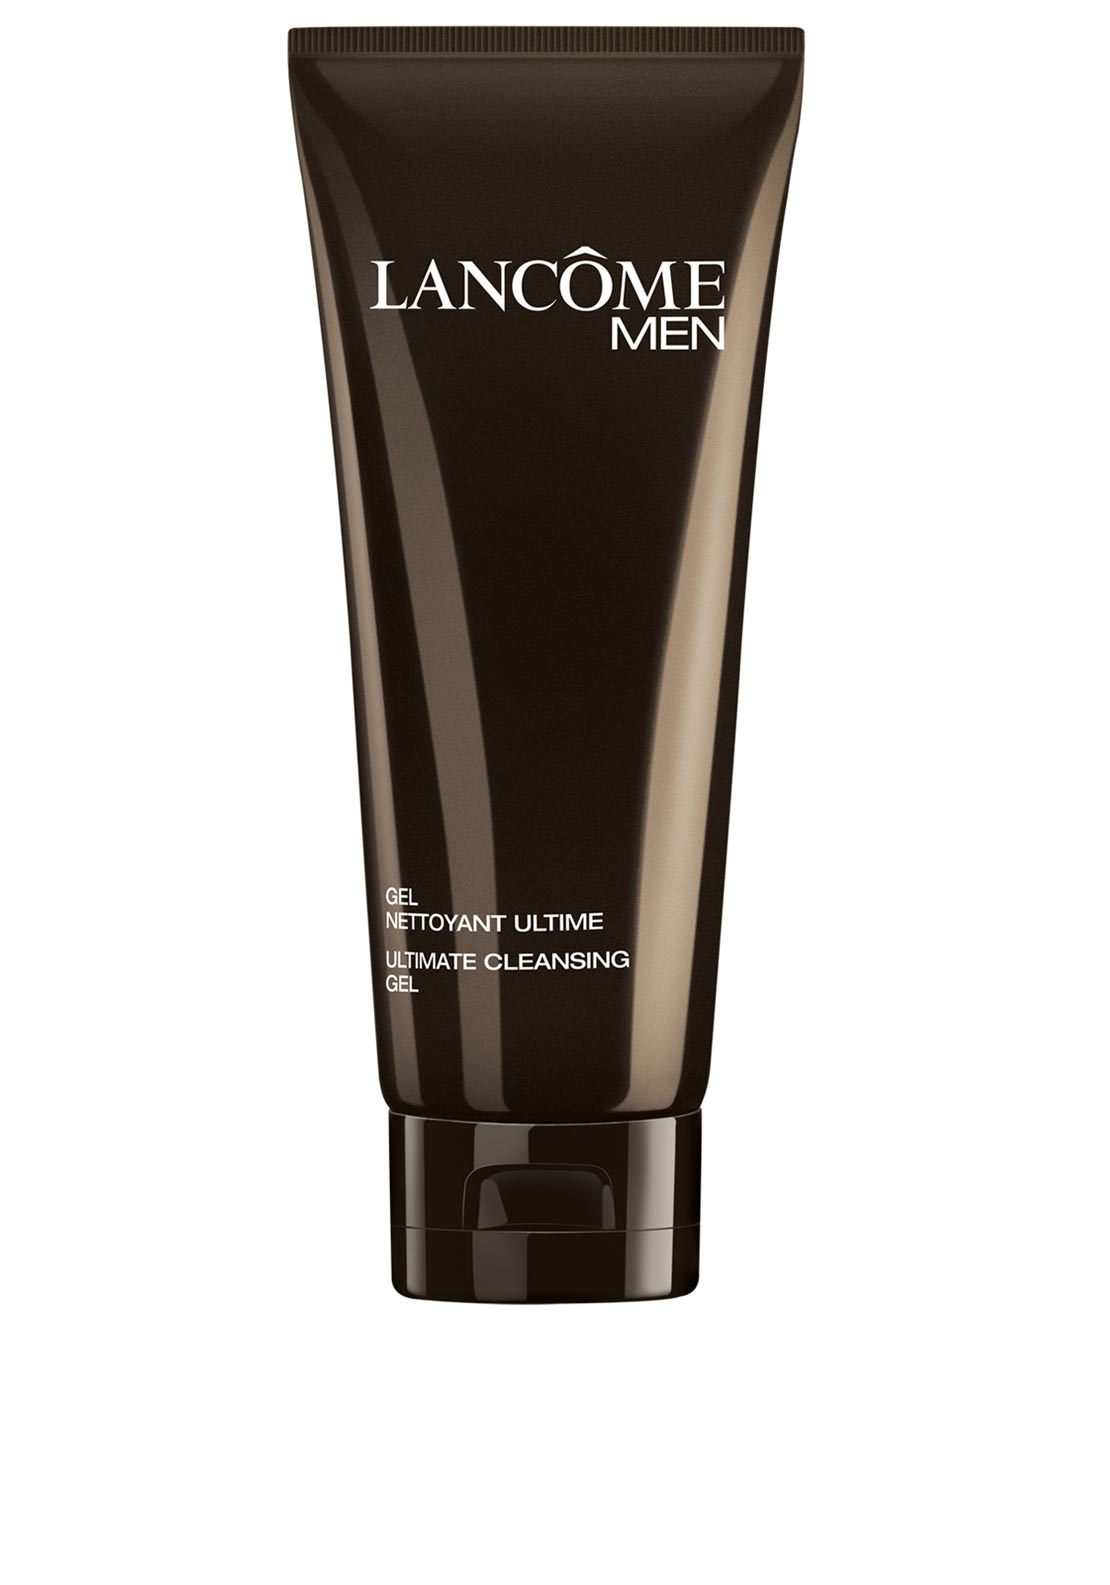 Lancome Men Ultimate Cleansing Gel, 100ml